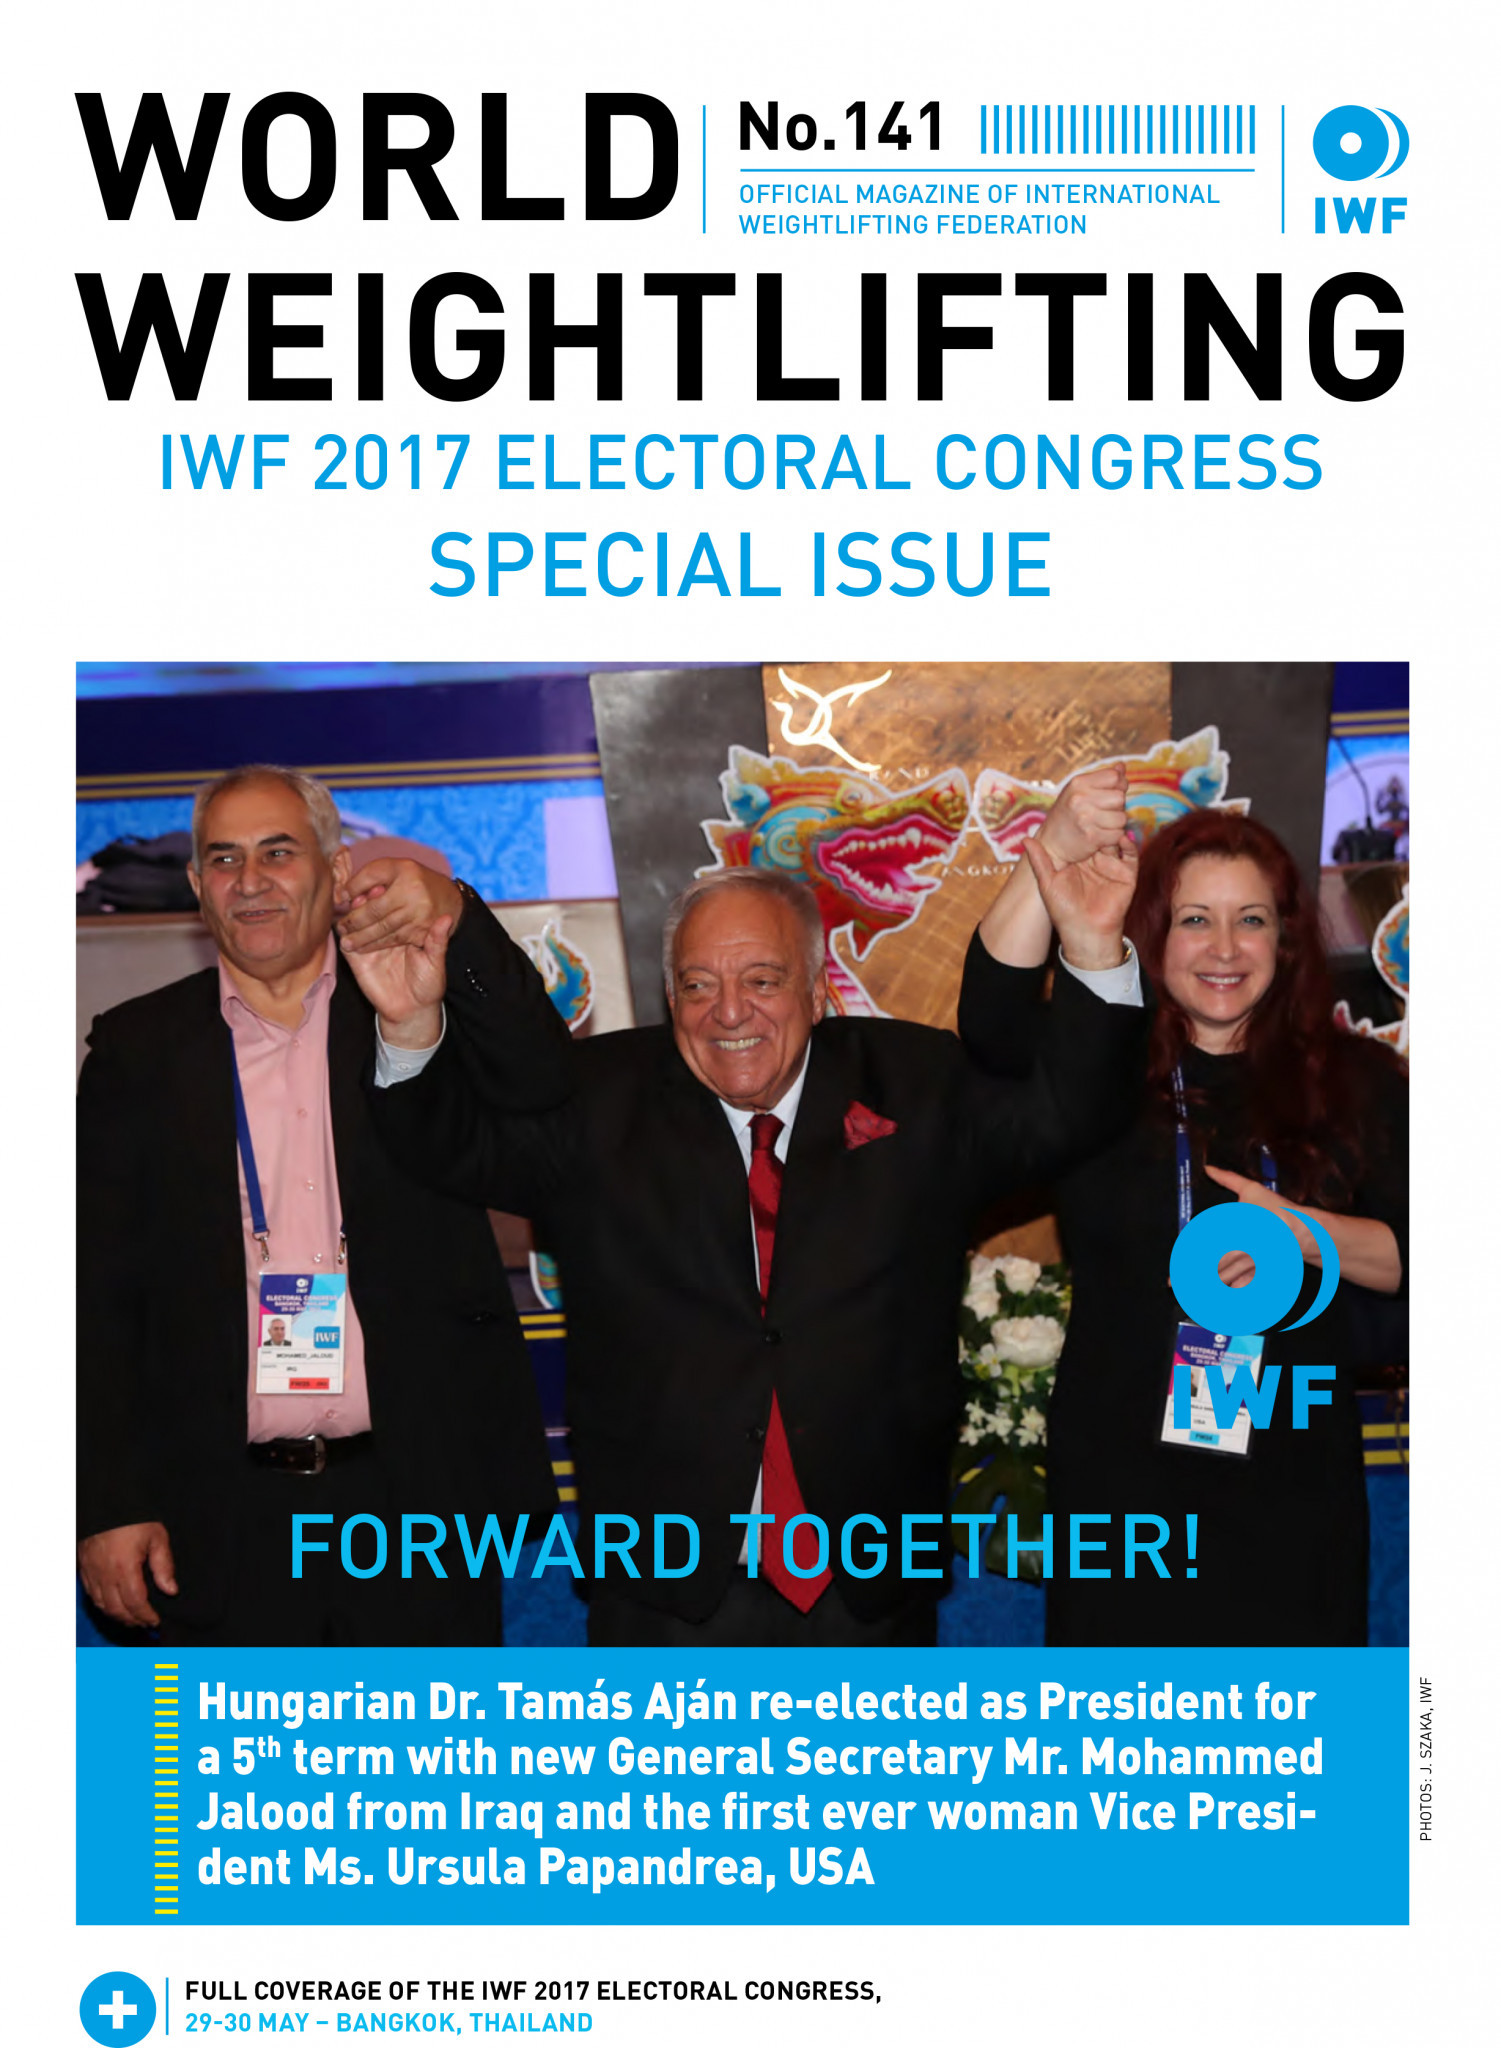 World Weightlifting Magazine No. 141